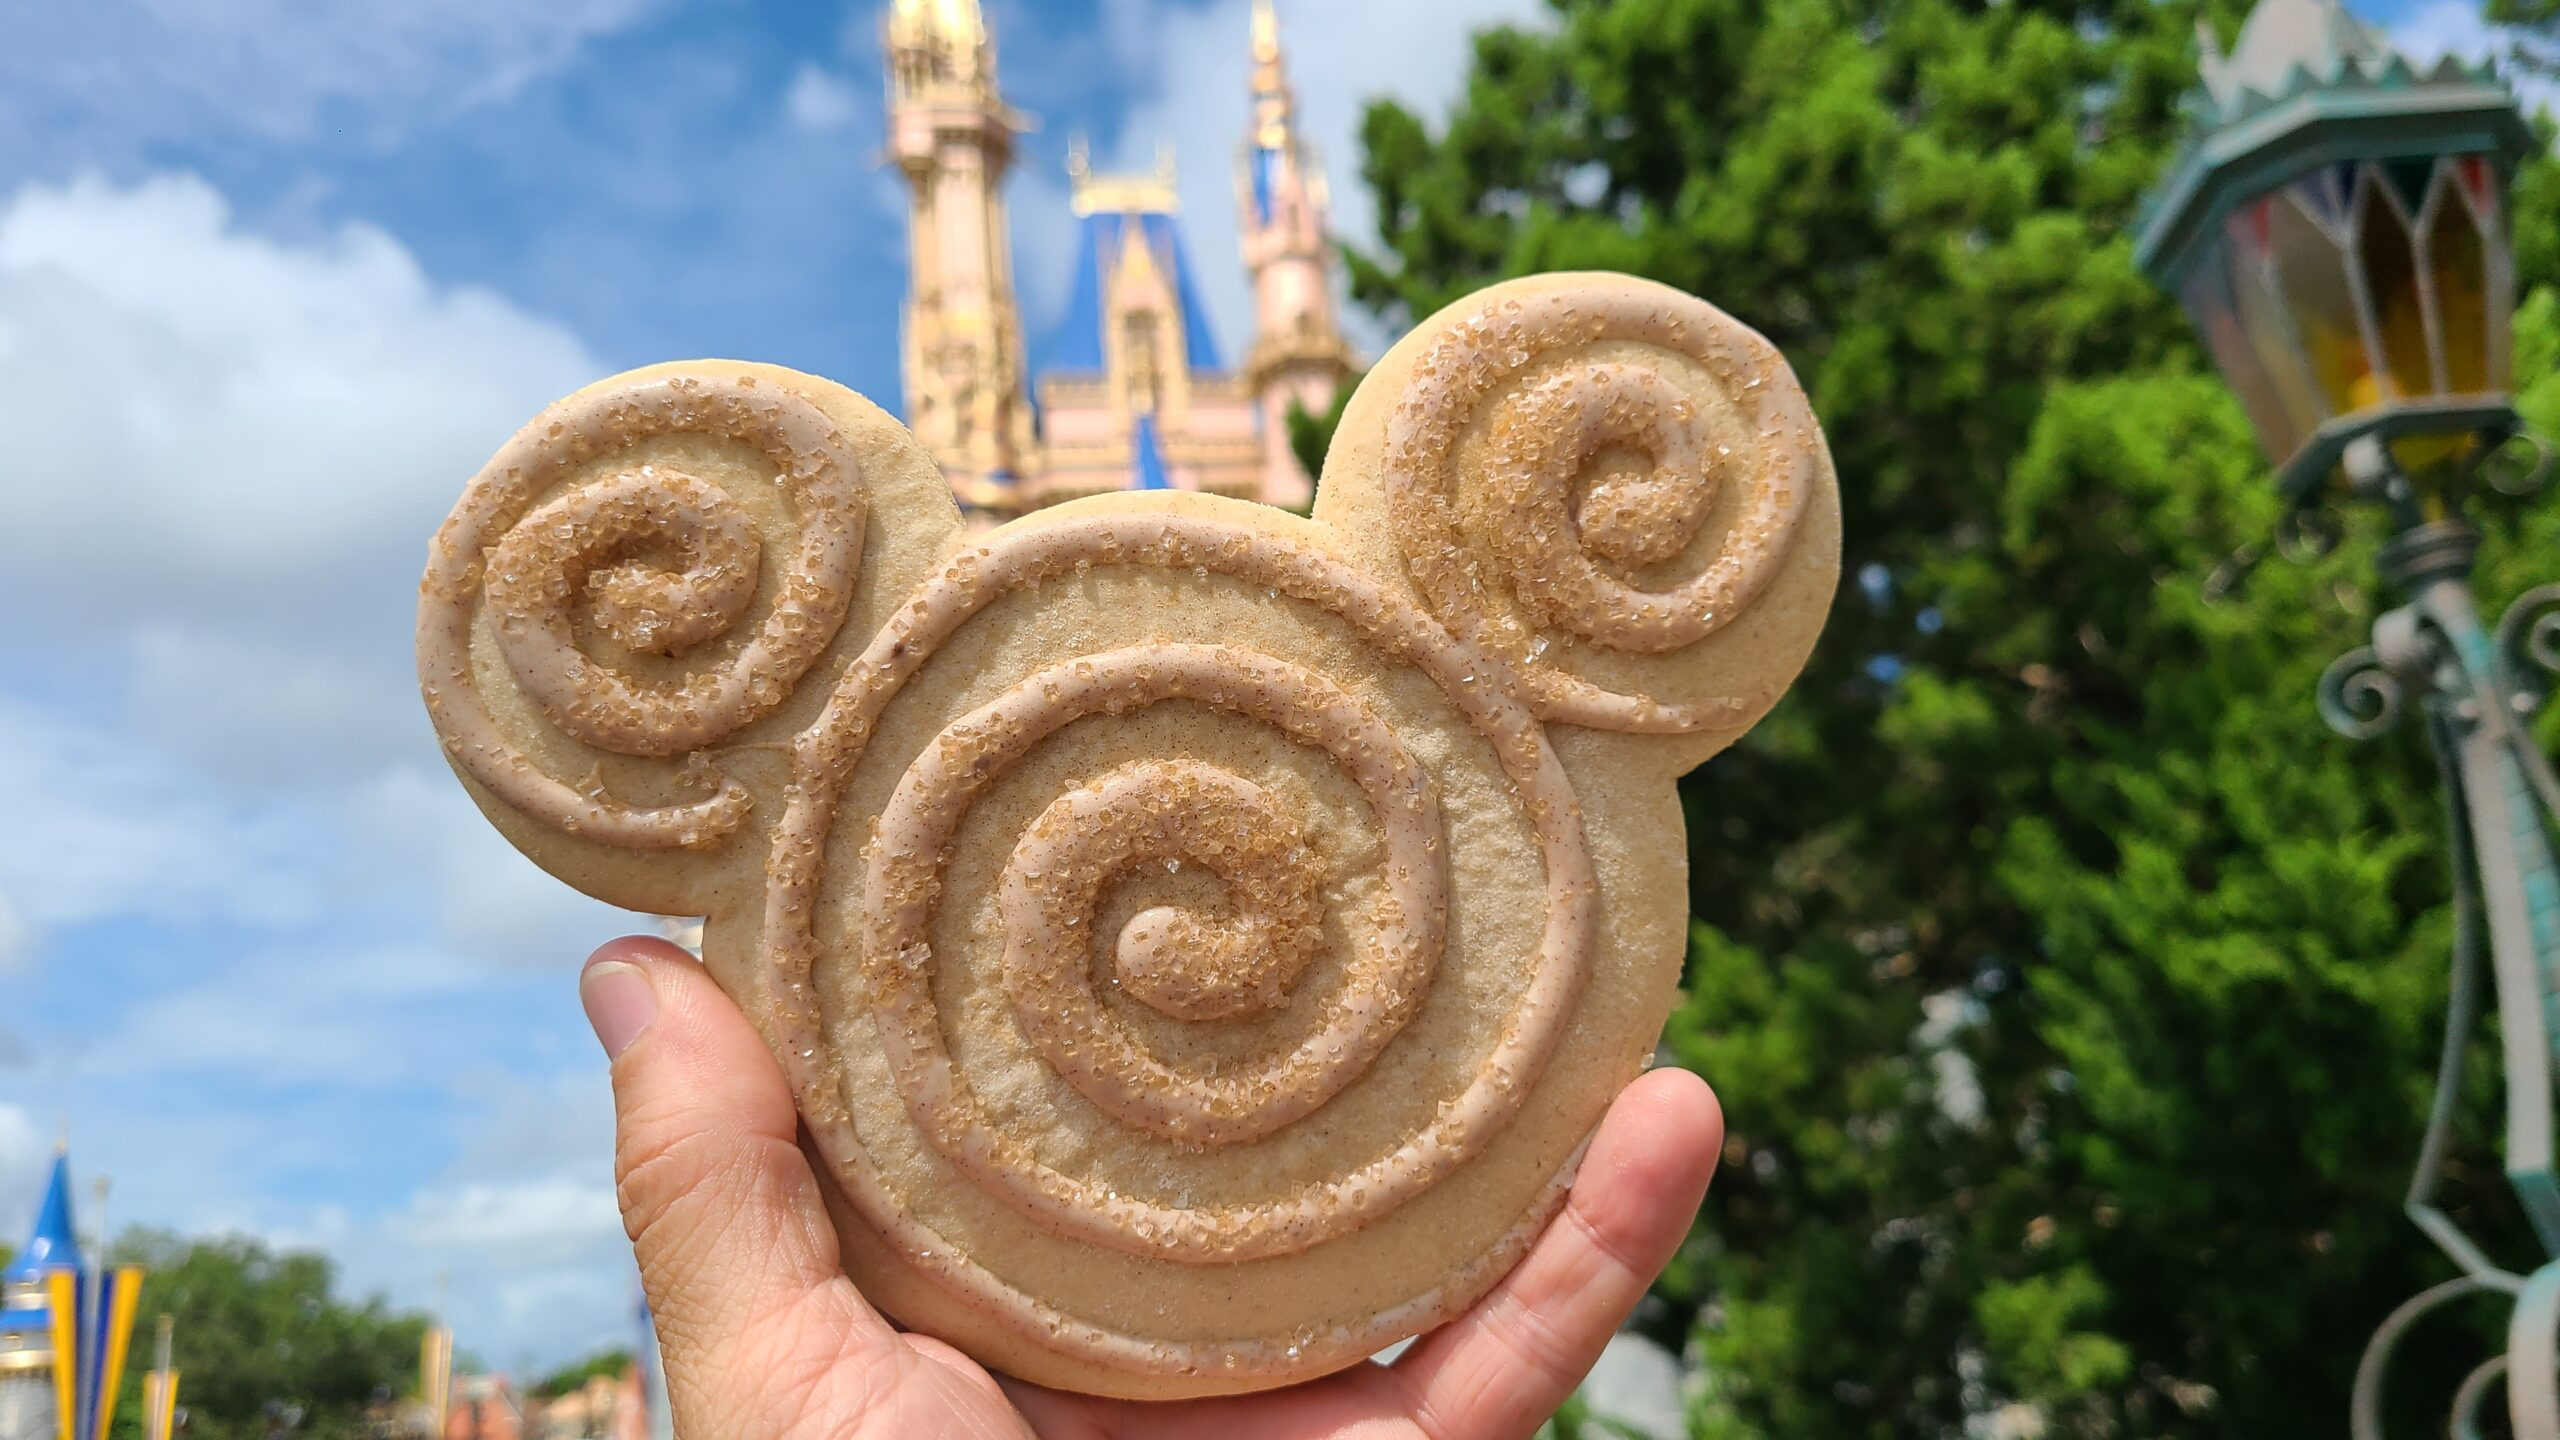 We are in love with these new Churro Tasty Treats at Disney World 2